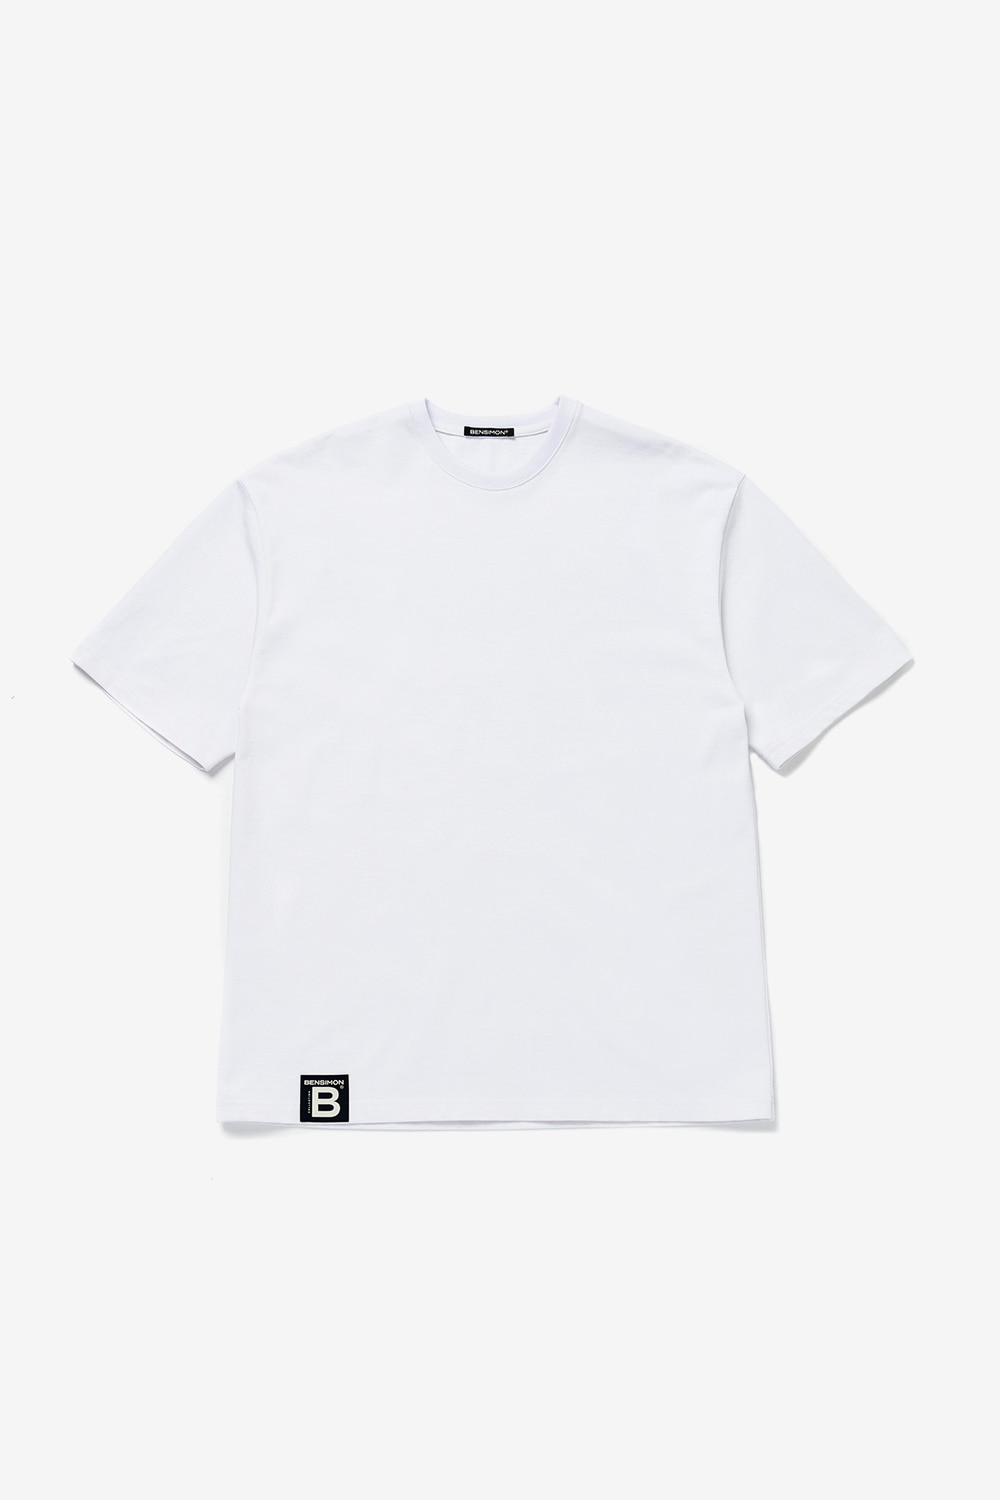 Original Label Over T(unisex)_White BS0STS205WH00F